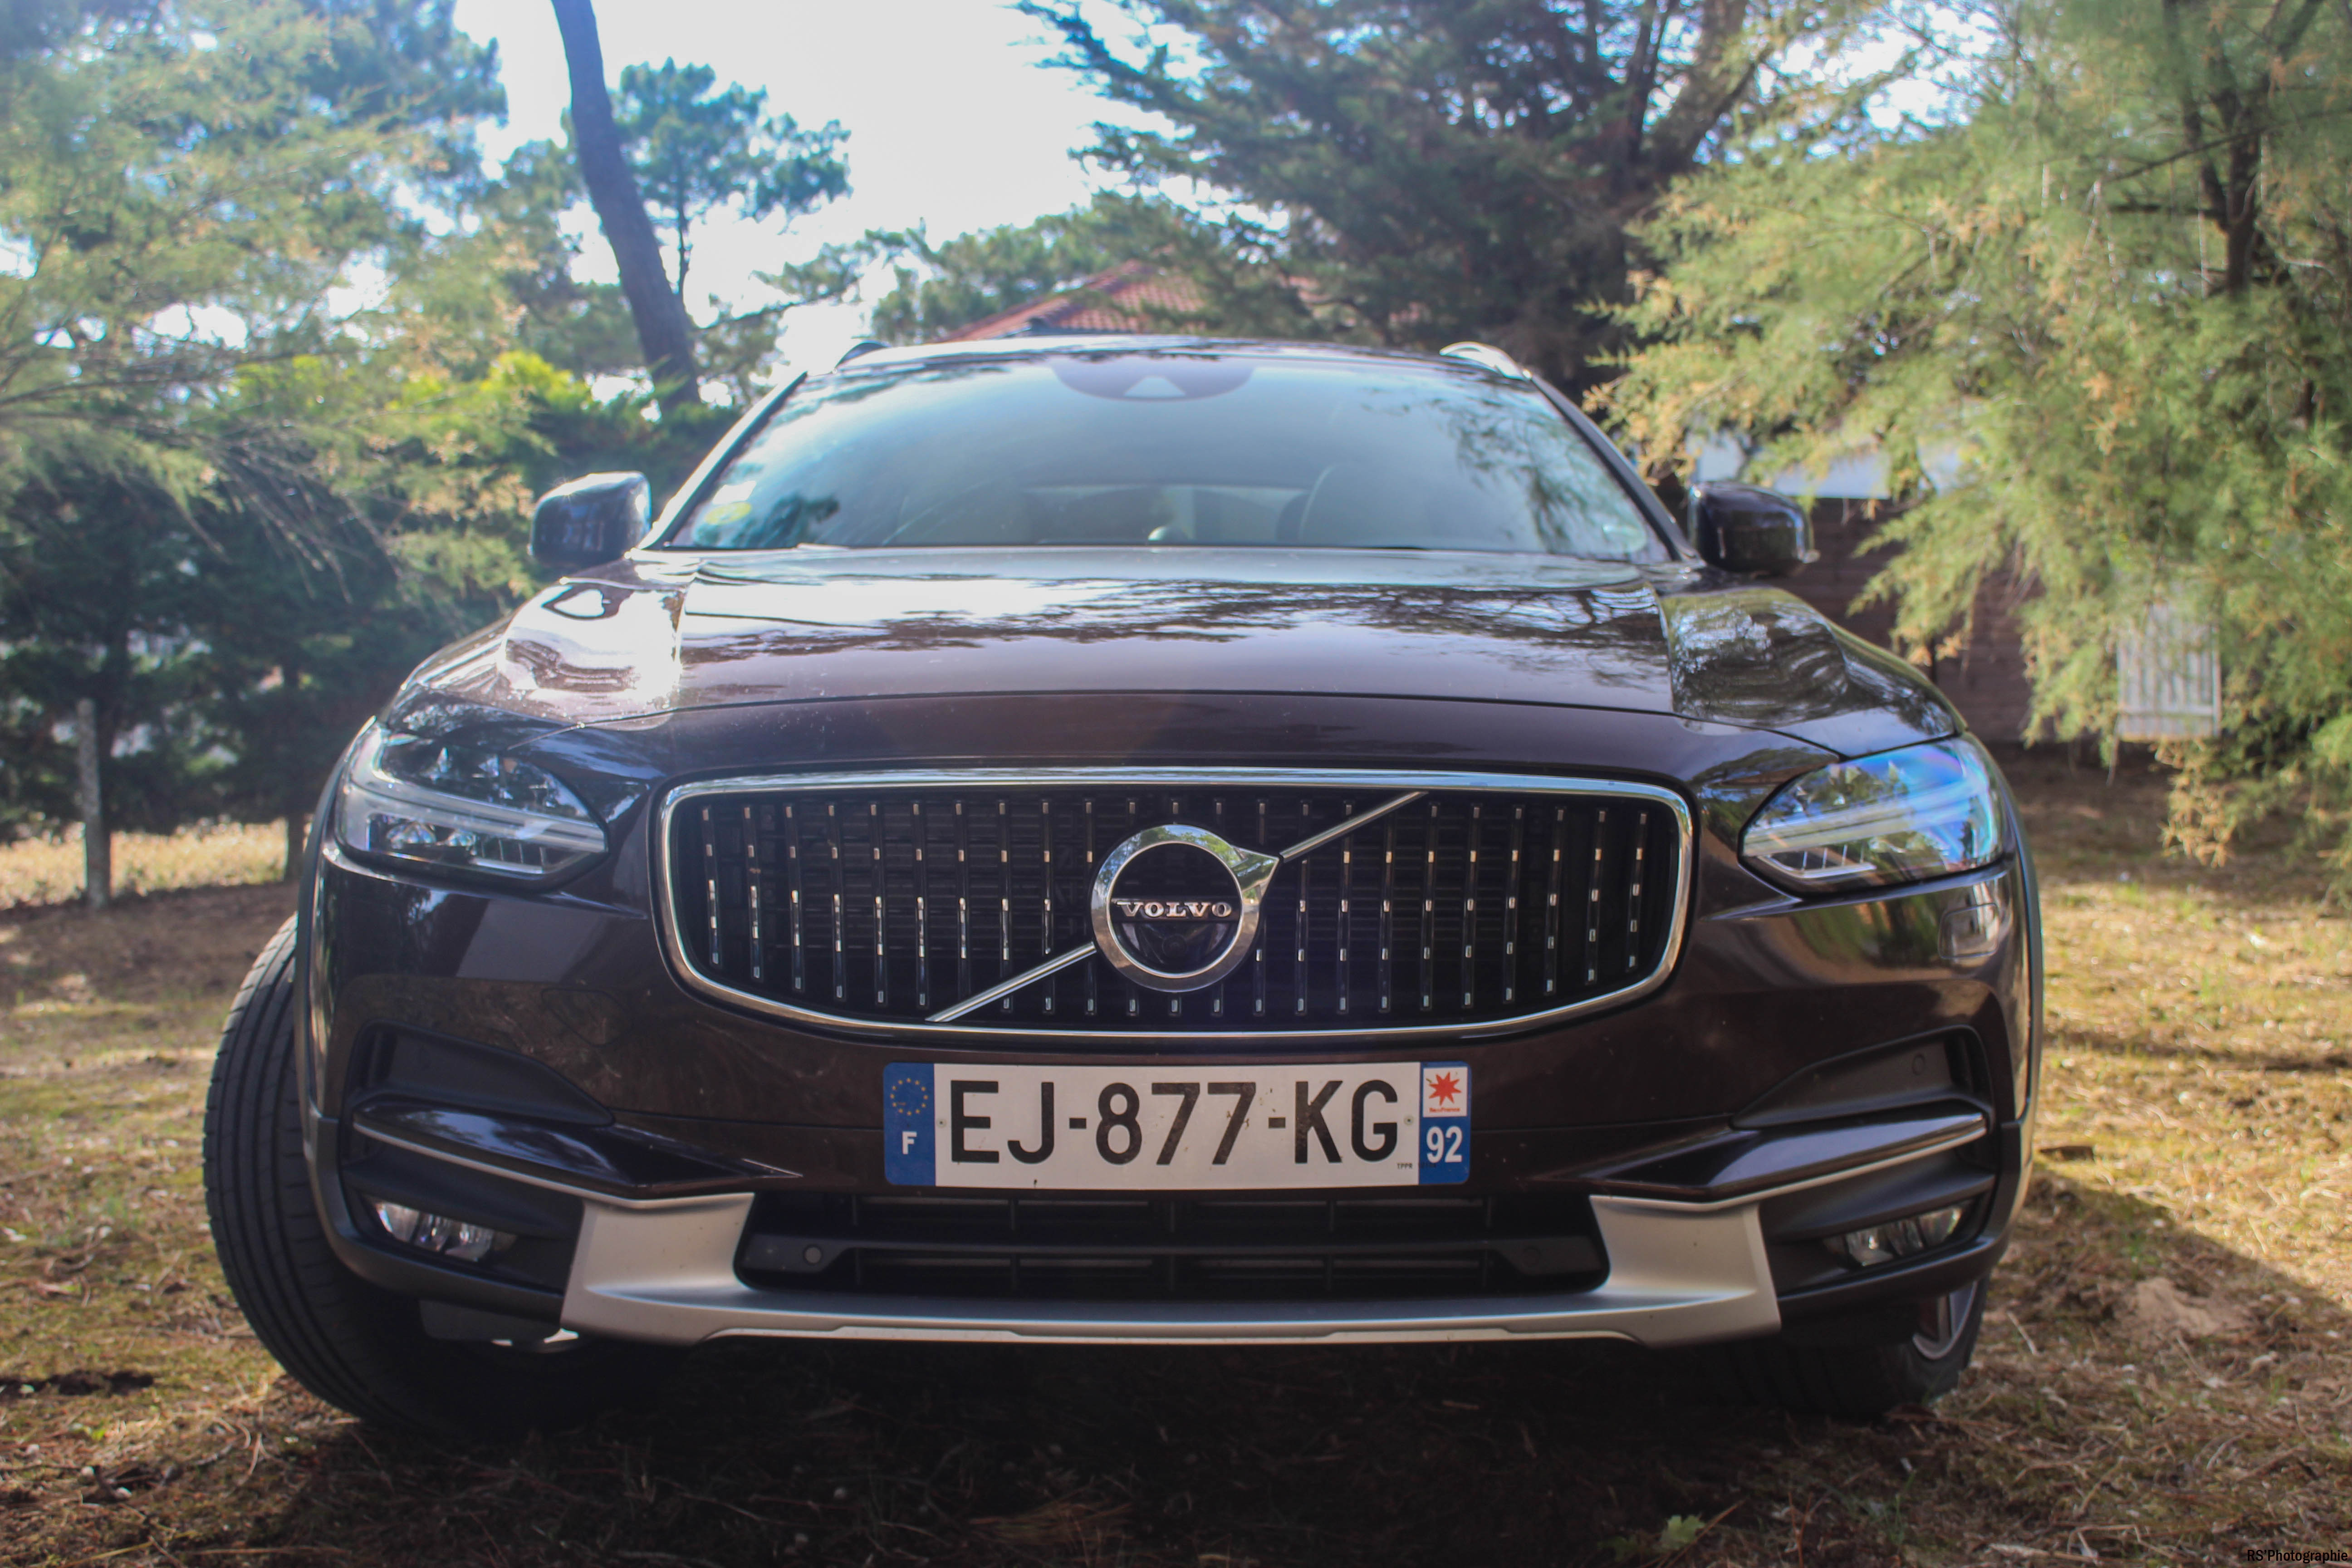 VolvoV90CrossCountry12-volvo-v90-d5-crosscountry-avant-front-Arnaud Demasier-RSPhotographie